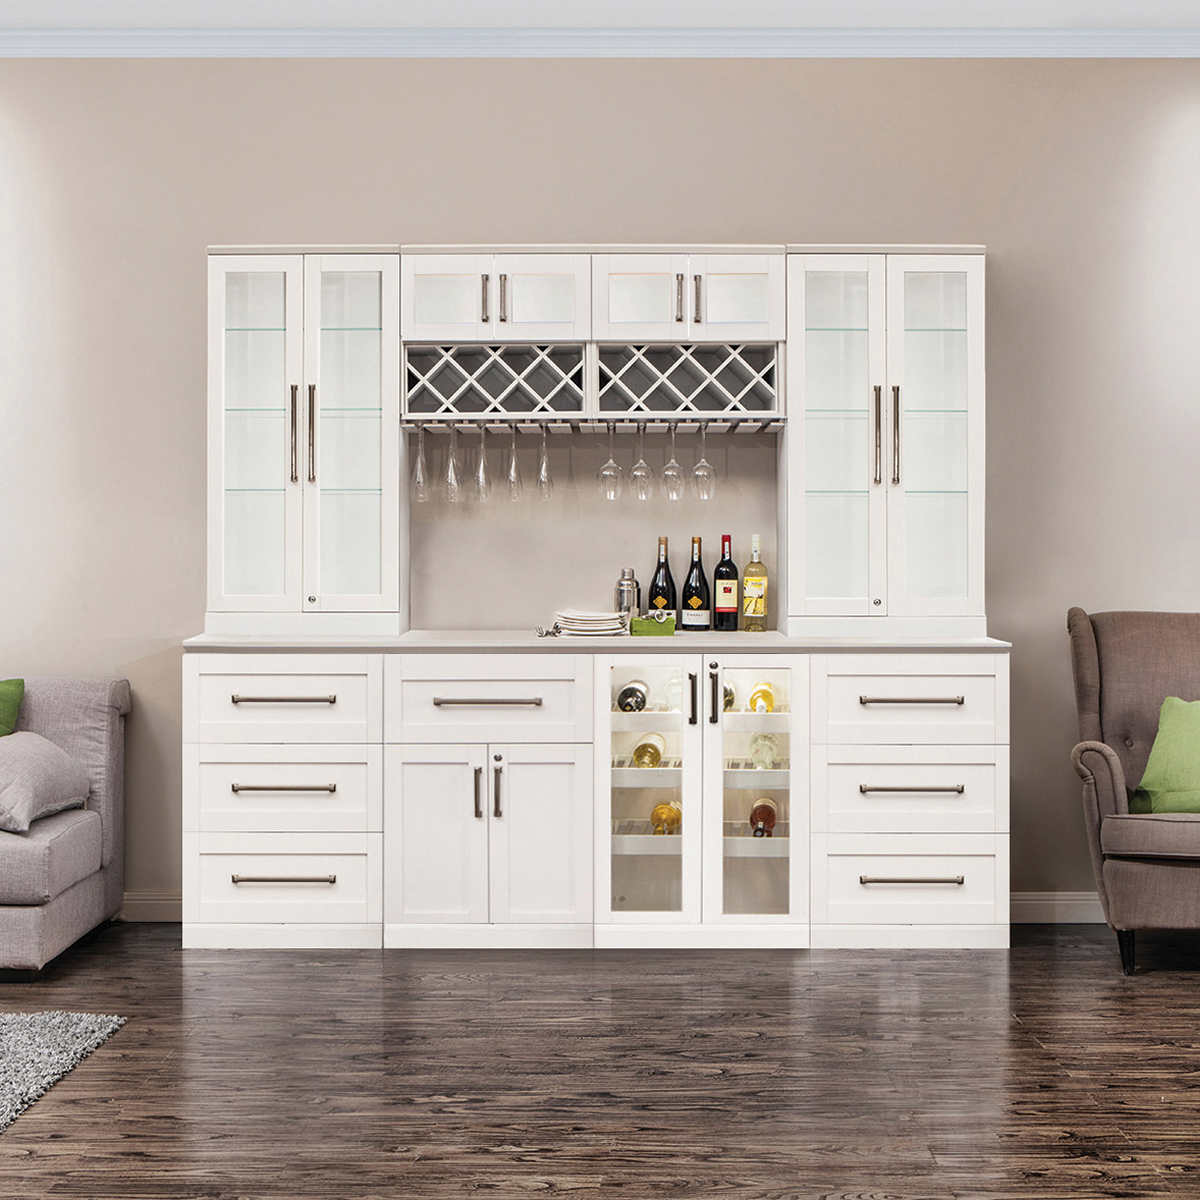 cabinets costco kitchen remodel Home Wine Bar 9 piece Cabinetry Set by NewAge Products